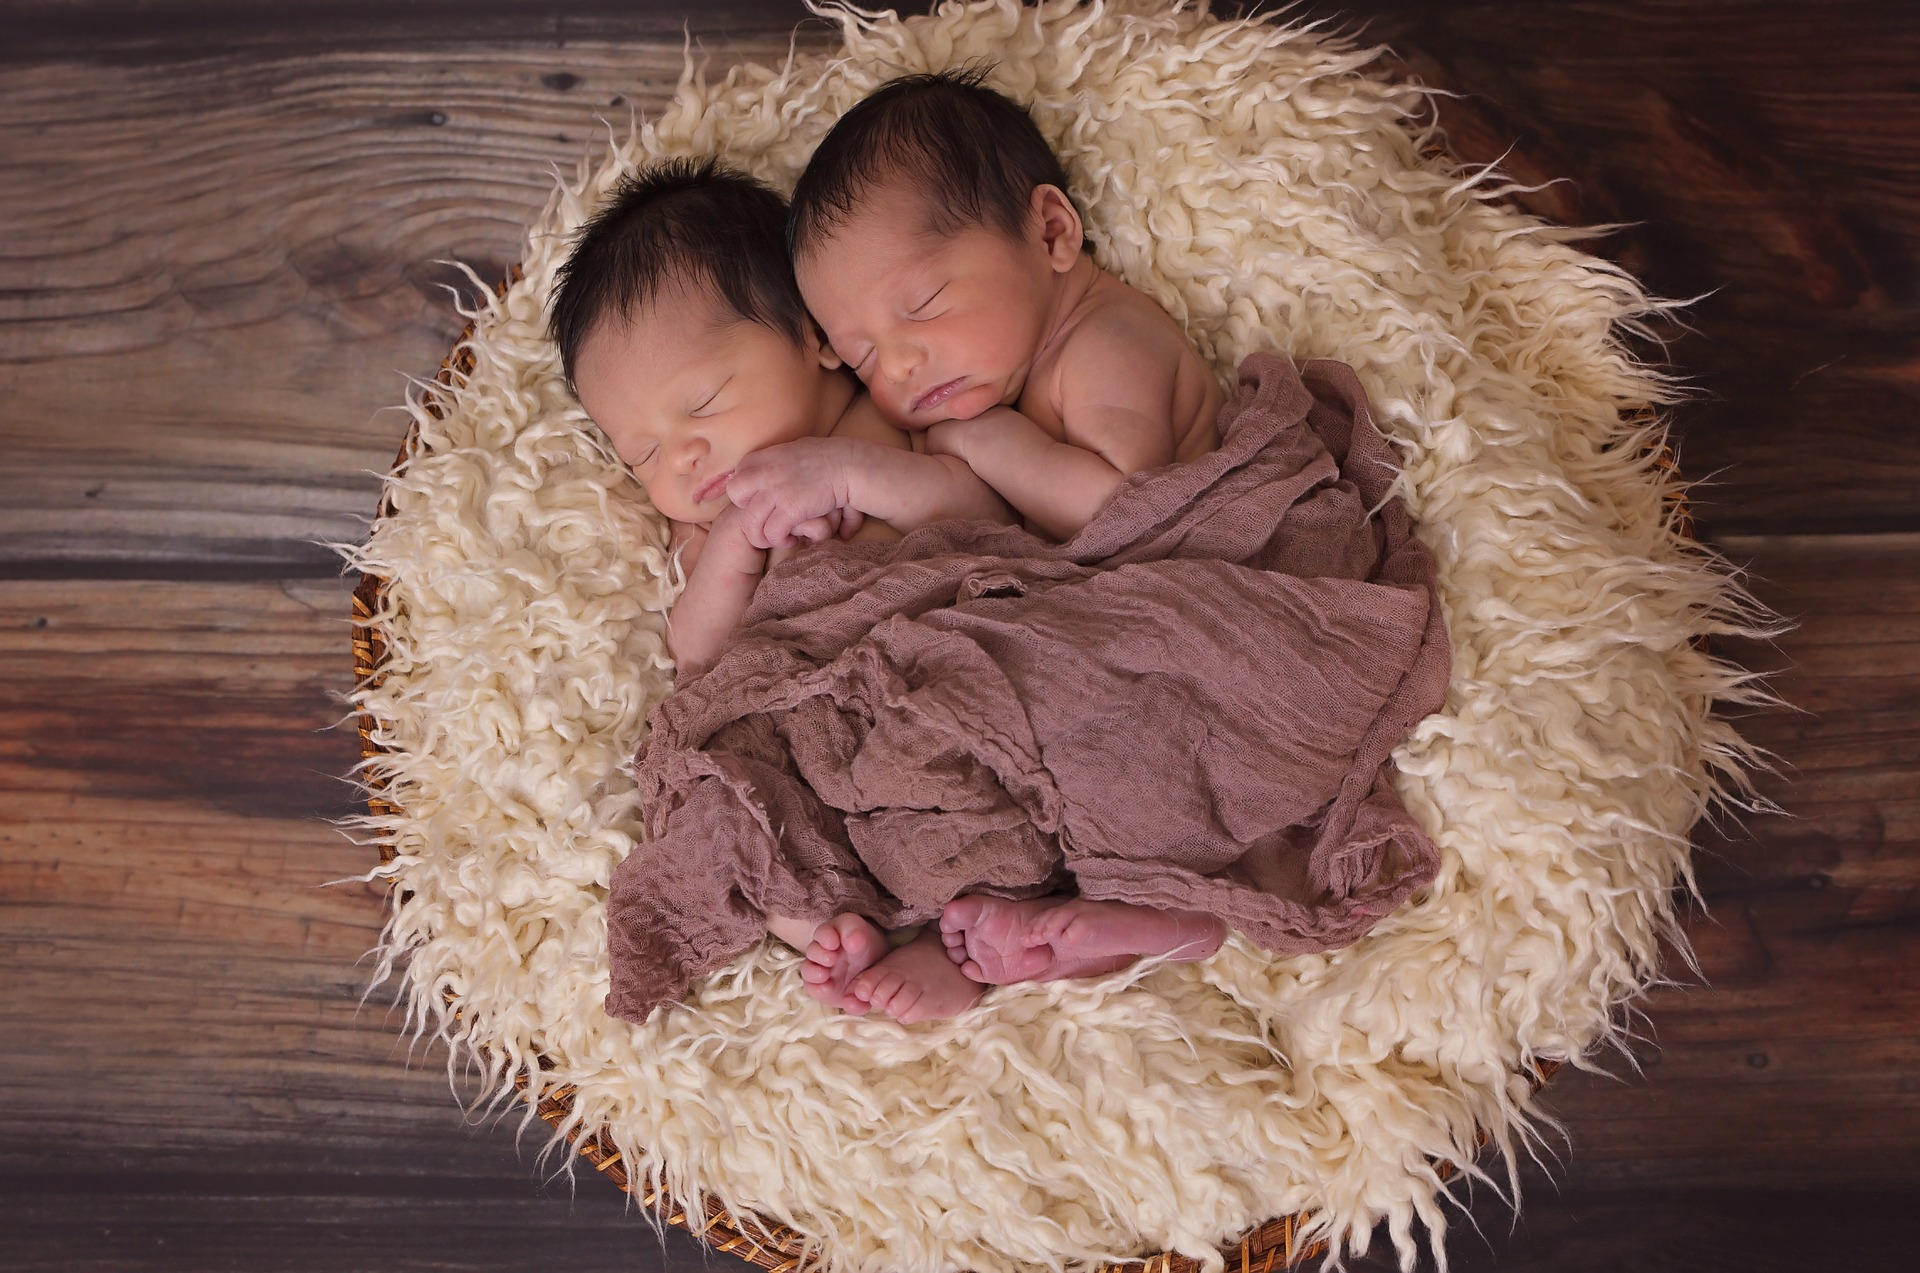 image of 2 newborn babies sleeping together